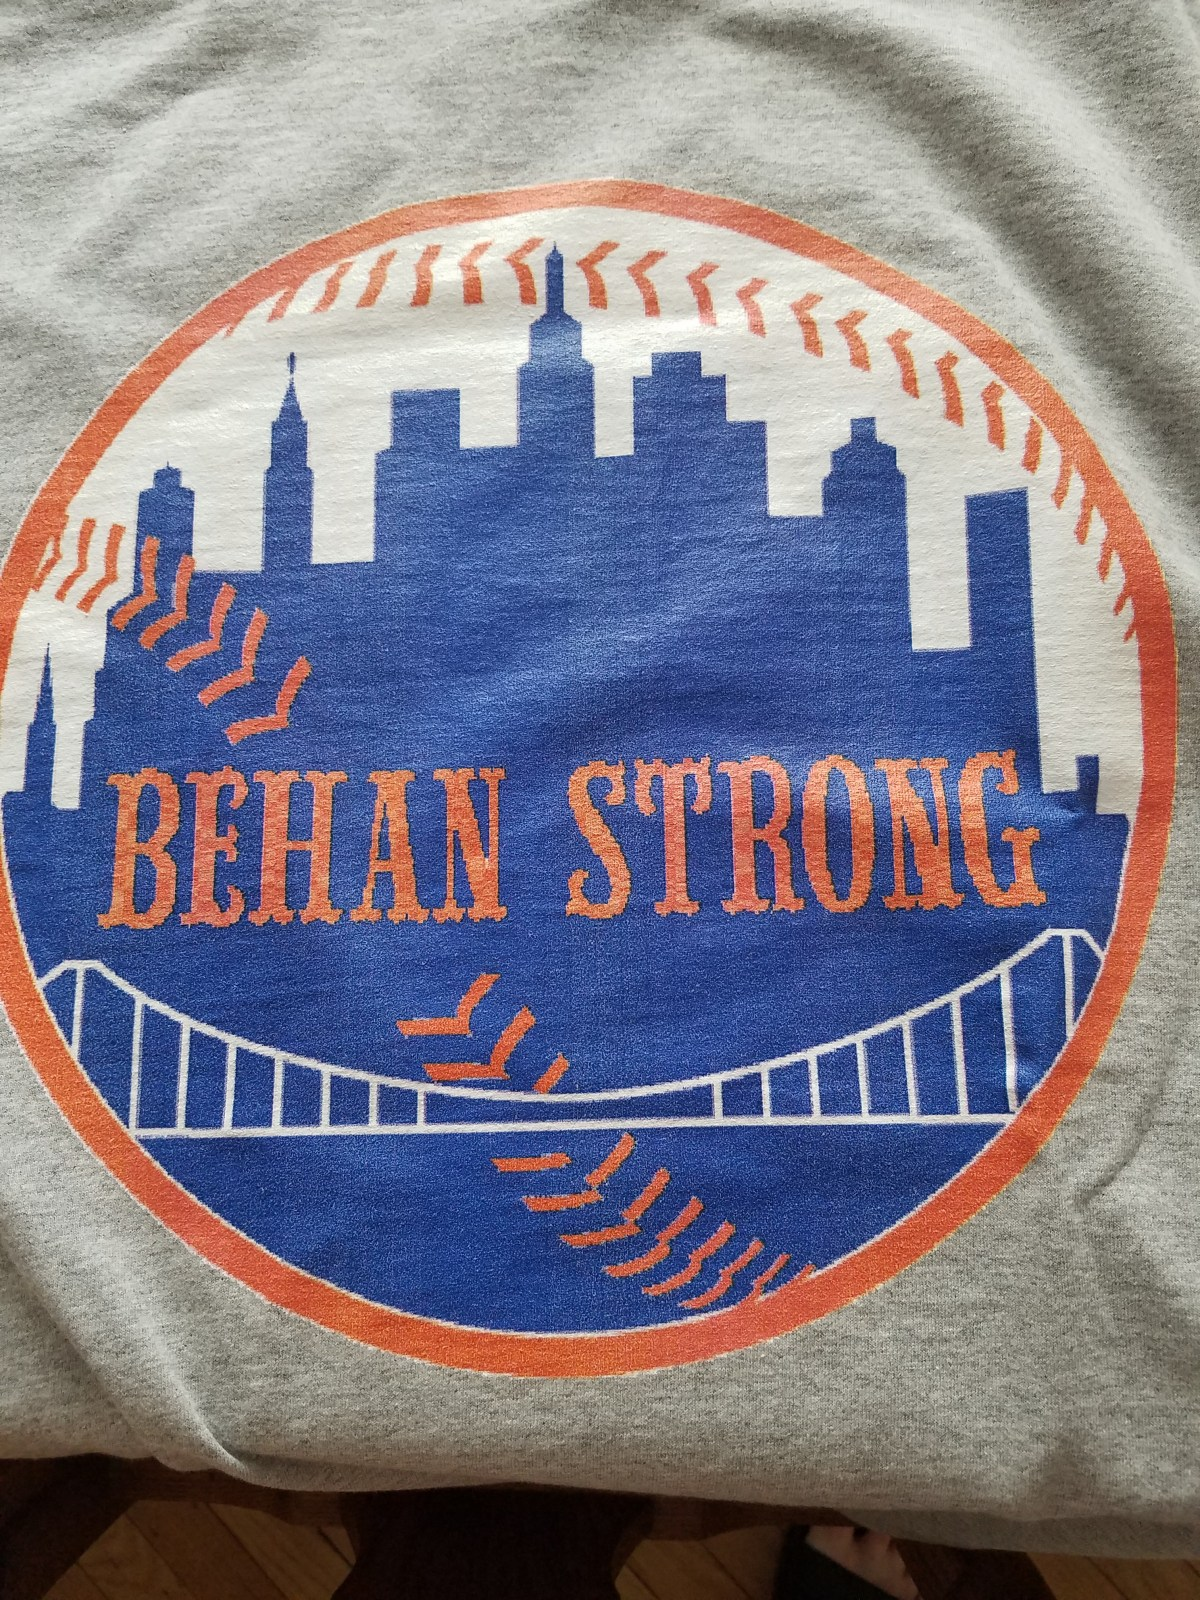 #BehanStrong